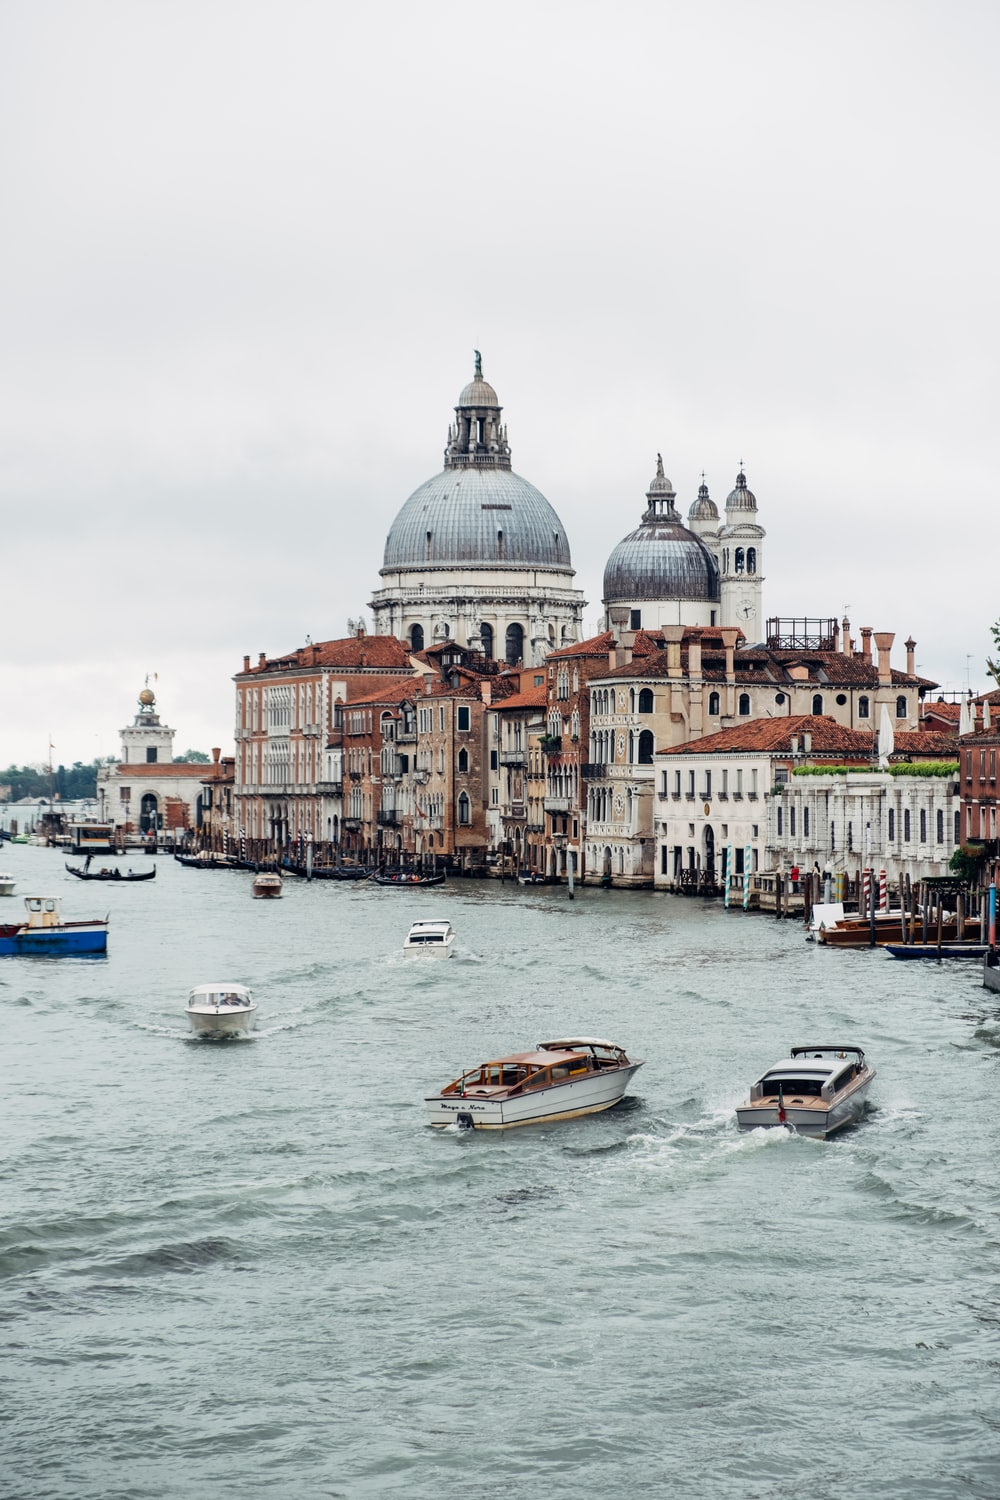 boats on sea viewing Grand Canal From Rialto Bridge, Italy during daytime